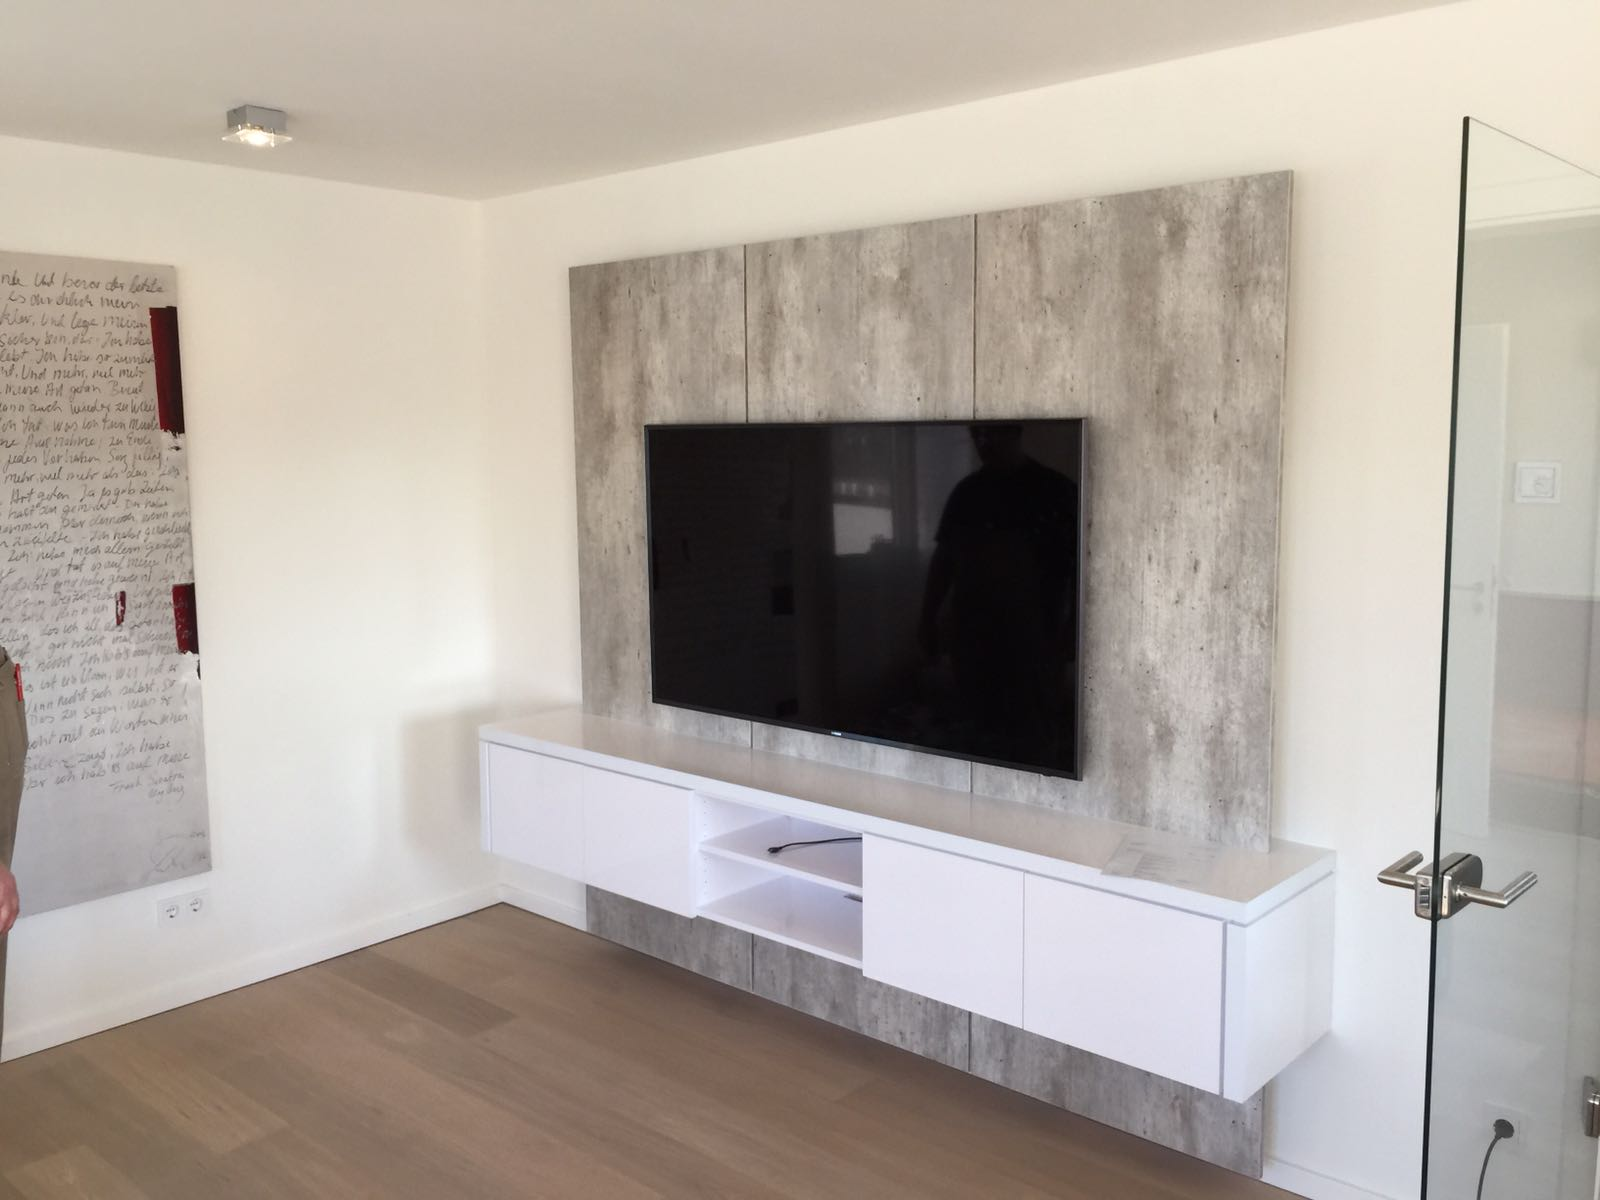 Tv wand xxl in betonoptik f r kunden in solingen tv wall - Wand in betonoptik ...